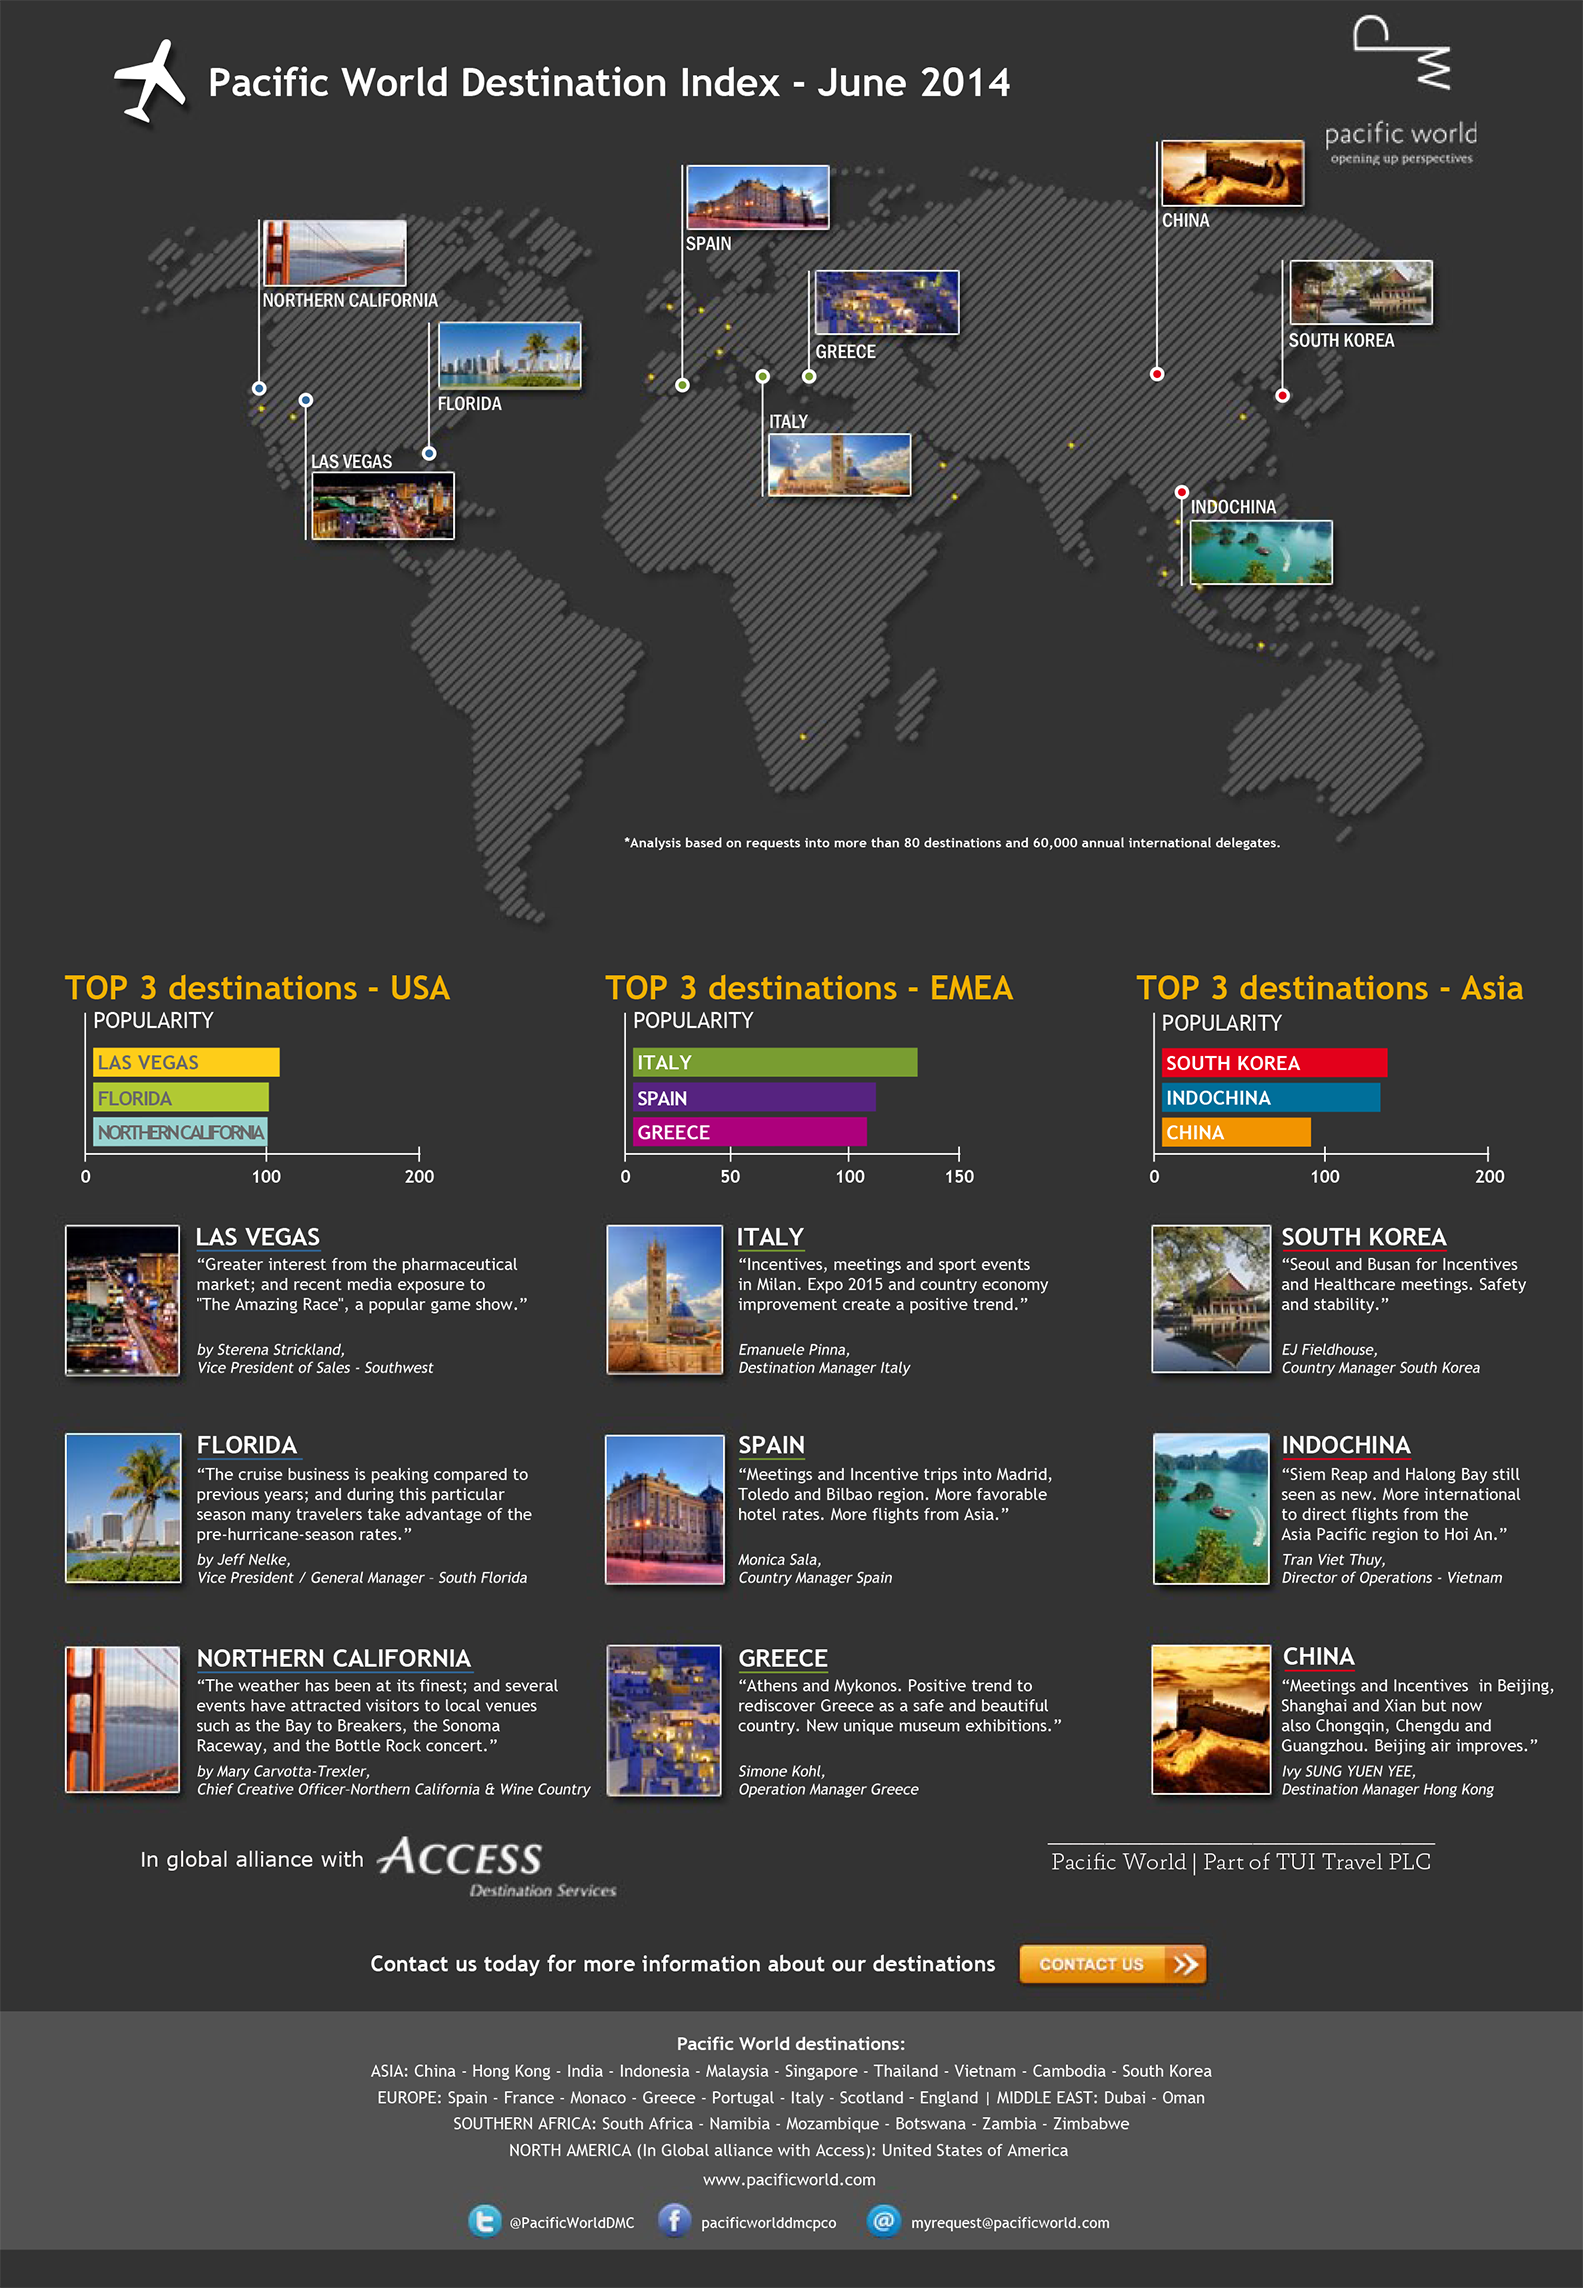 PacificWorldDestinationIndex-June2014